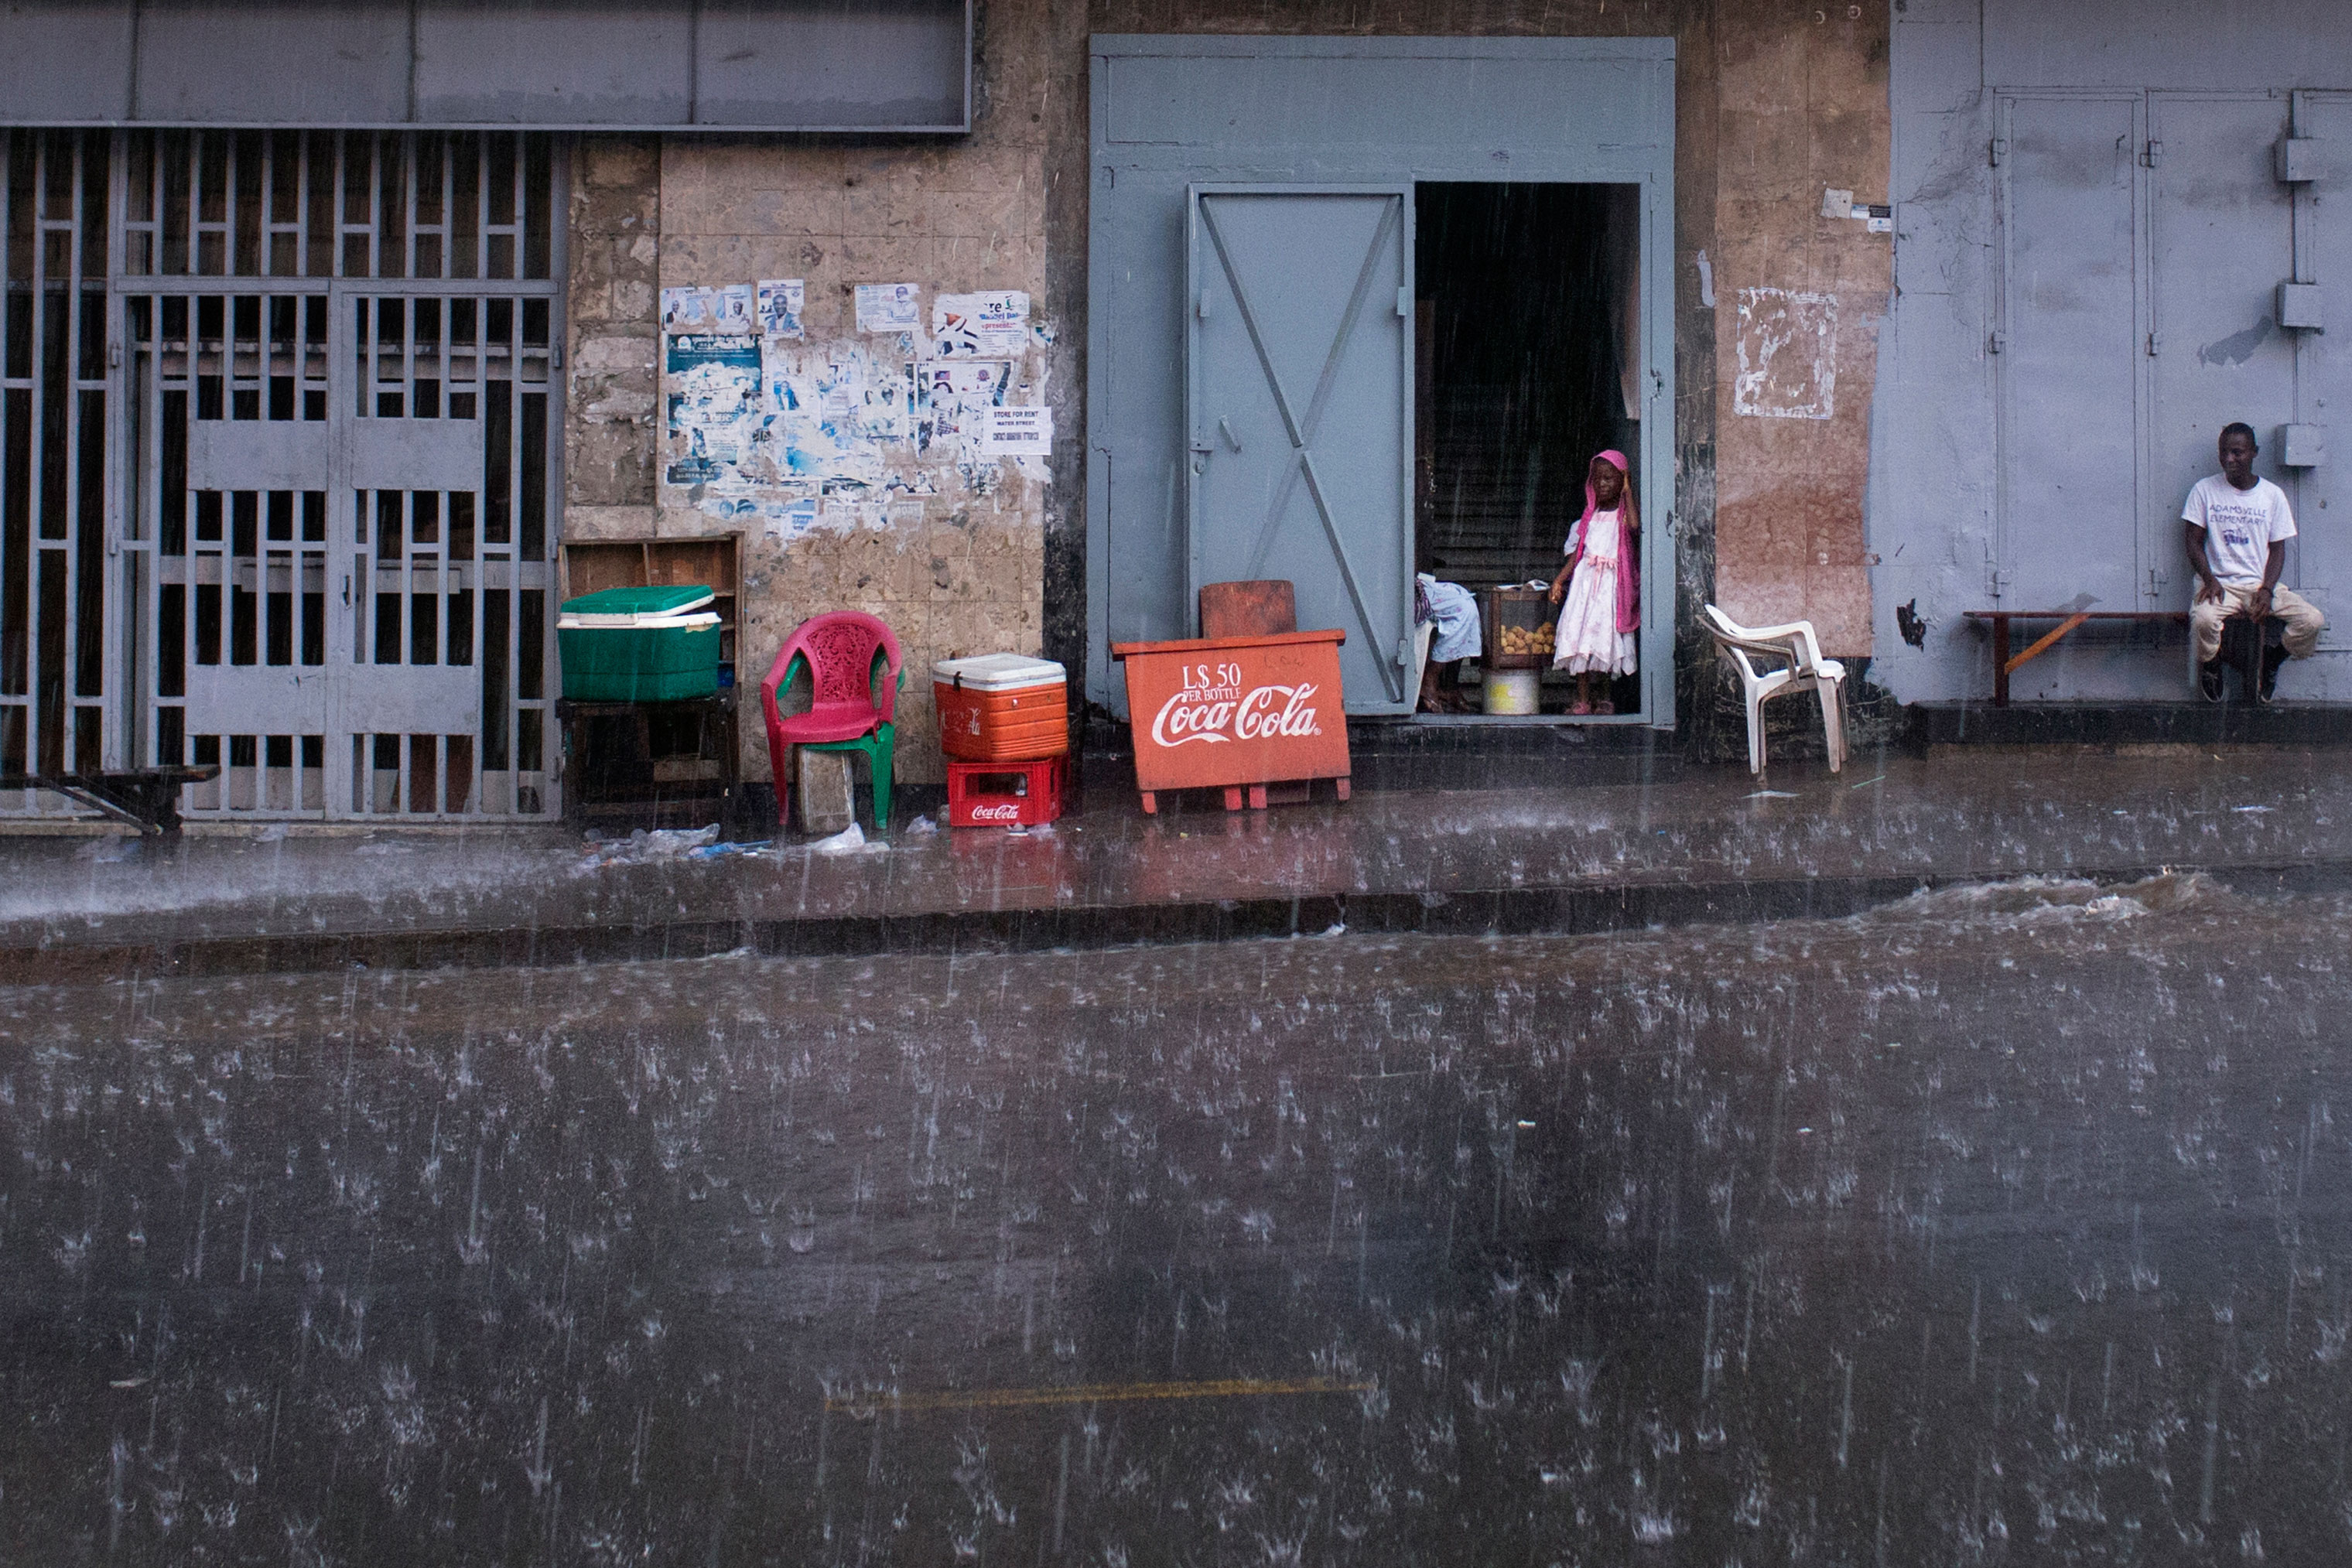 A little girl looks out onto Ashmun Street in Monrovia. Rainy season lasts more than half the year in Liberia.